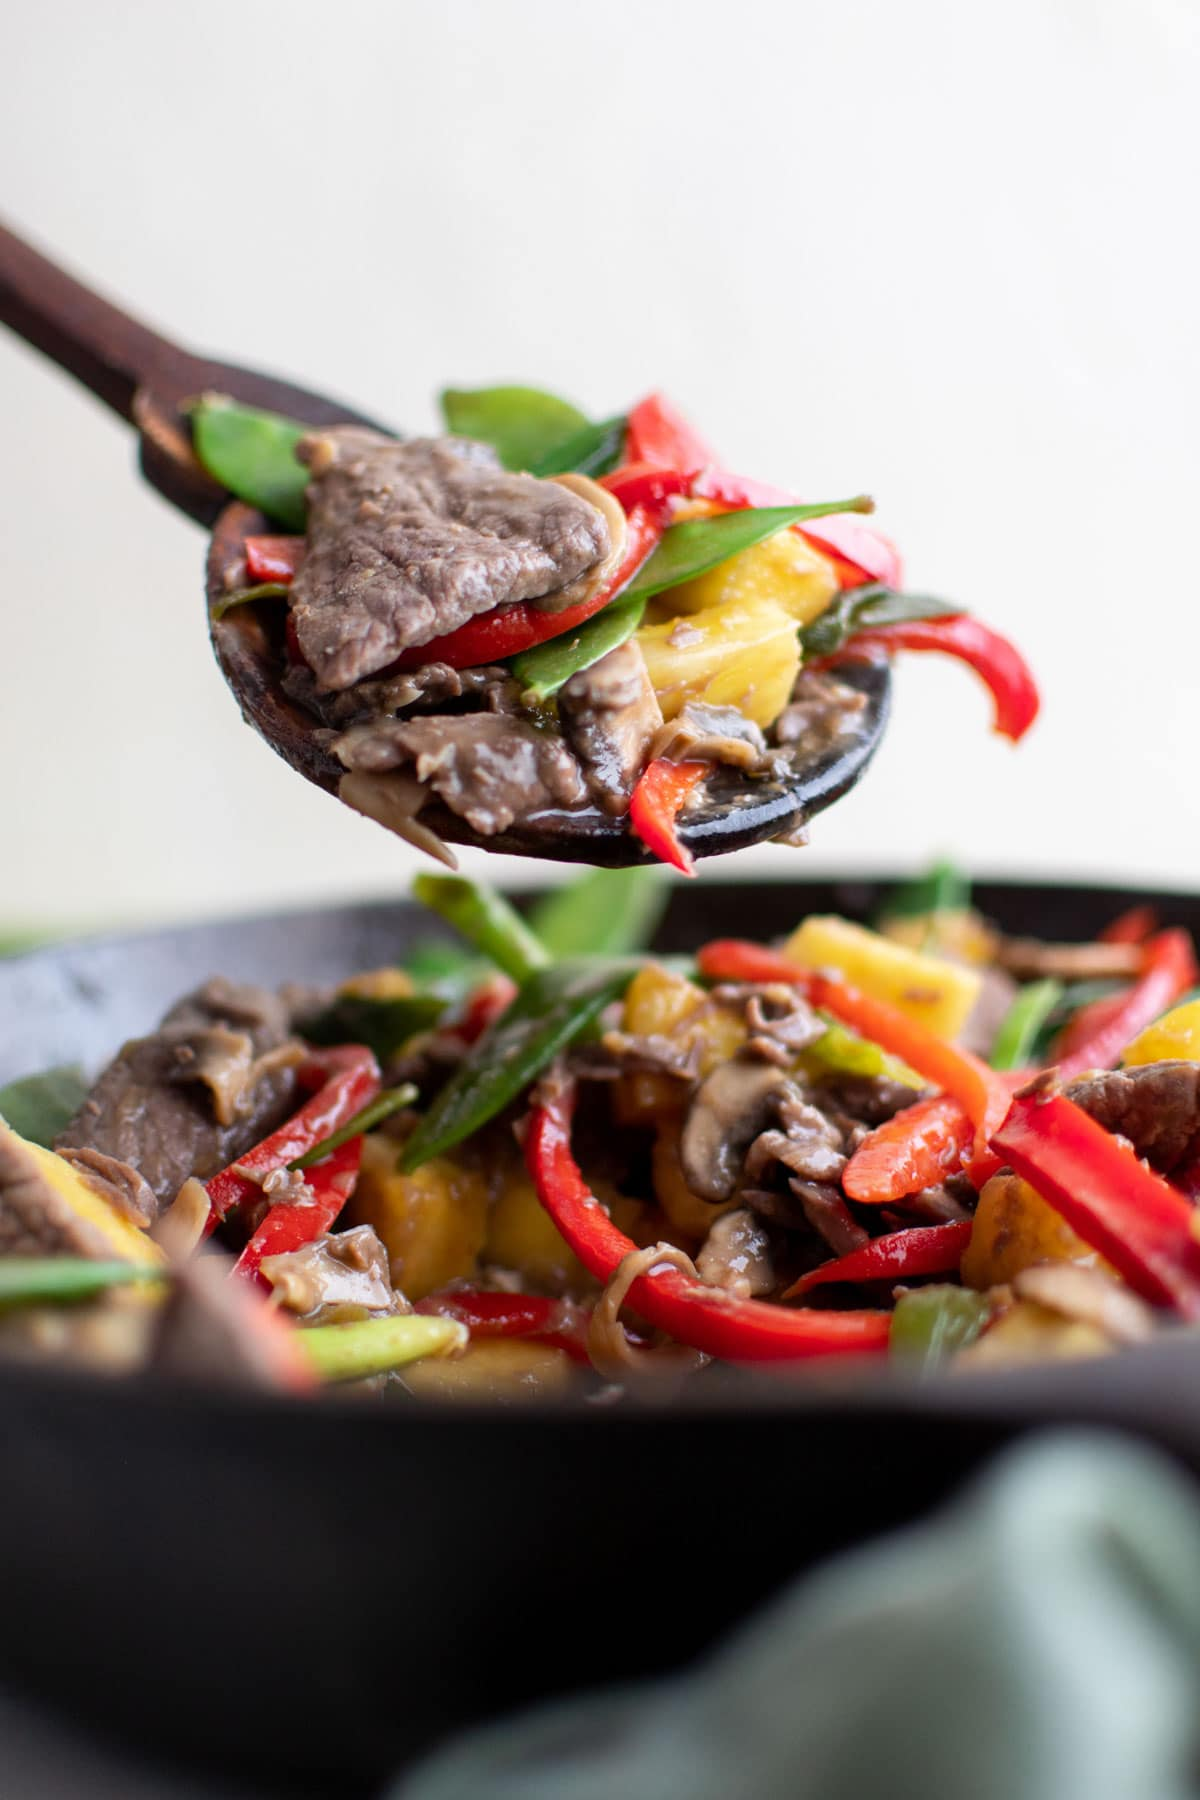 skillet with pineapple beef stir fry, wood spoon